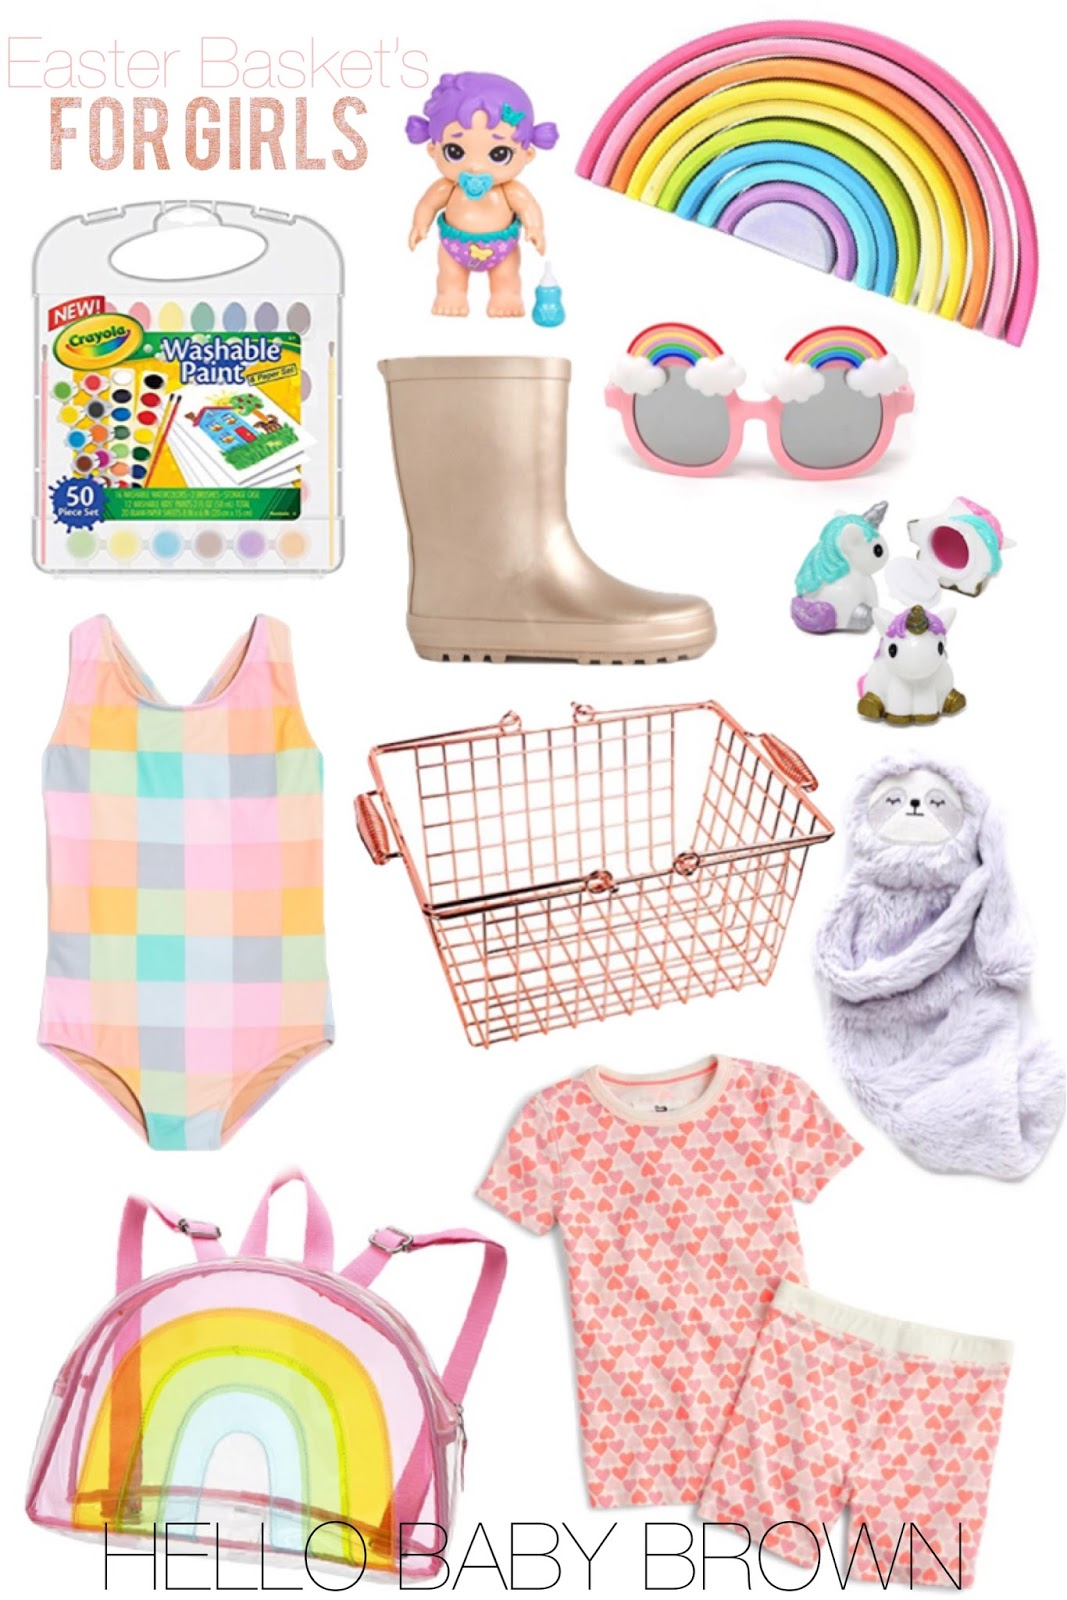 Hello baby brown easter basket ideas for girls baby phayre is going to go nuts over this baby wooden rainbow stacker the rose gold rain boots i posted above have gotten some negle